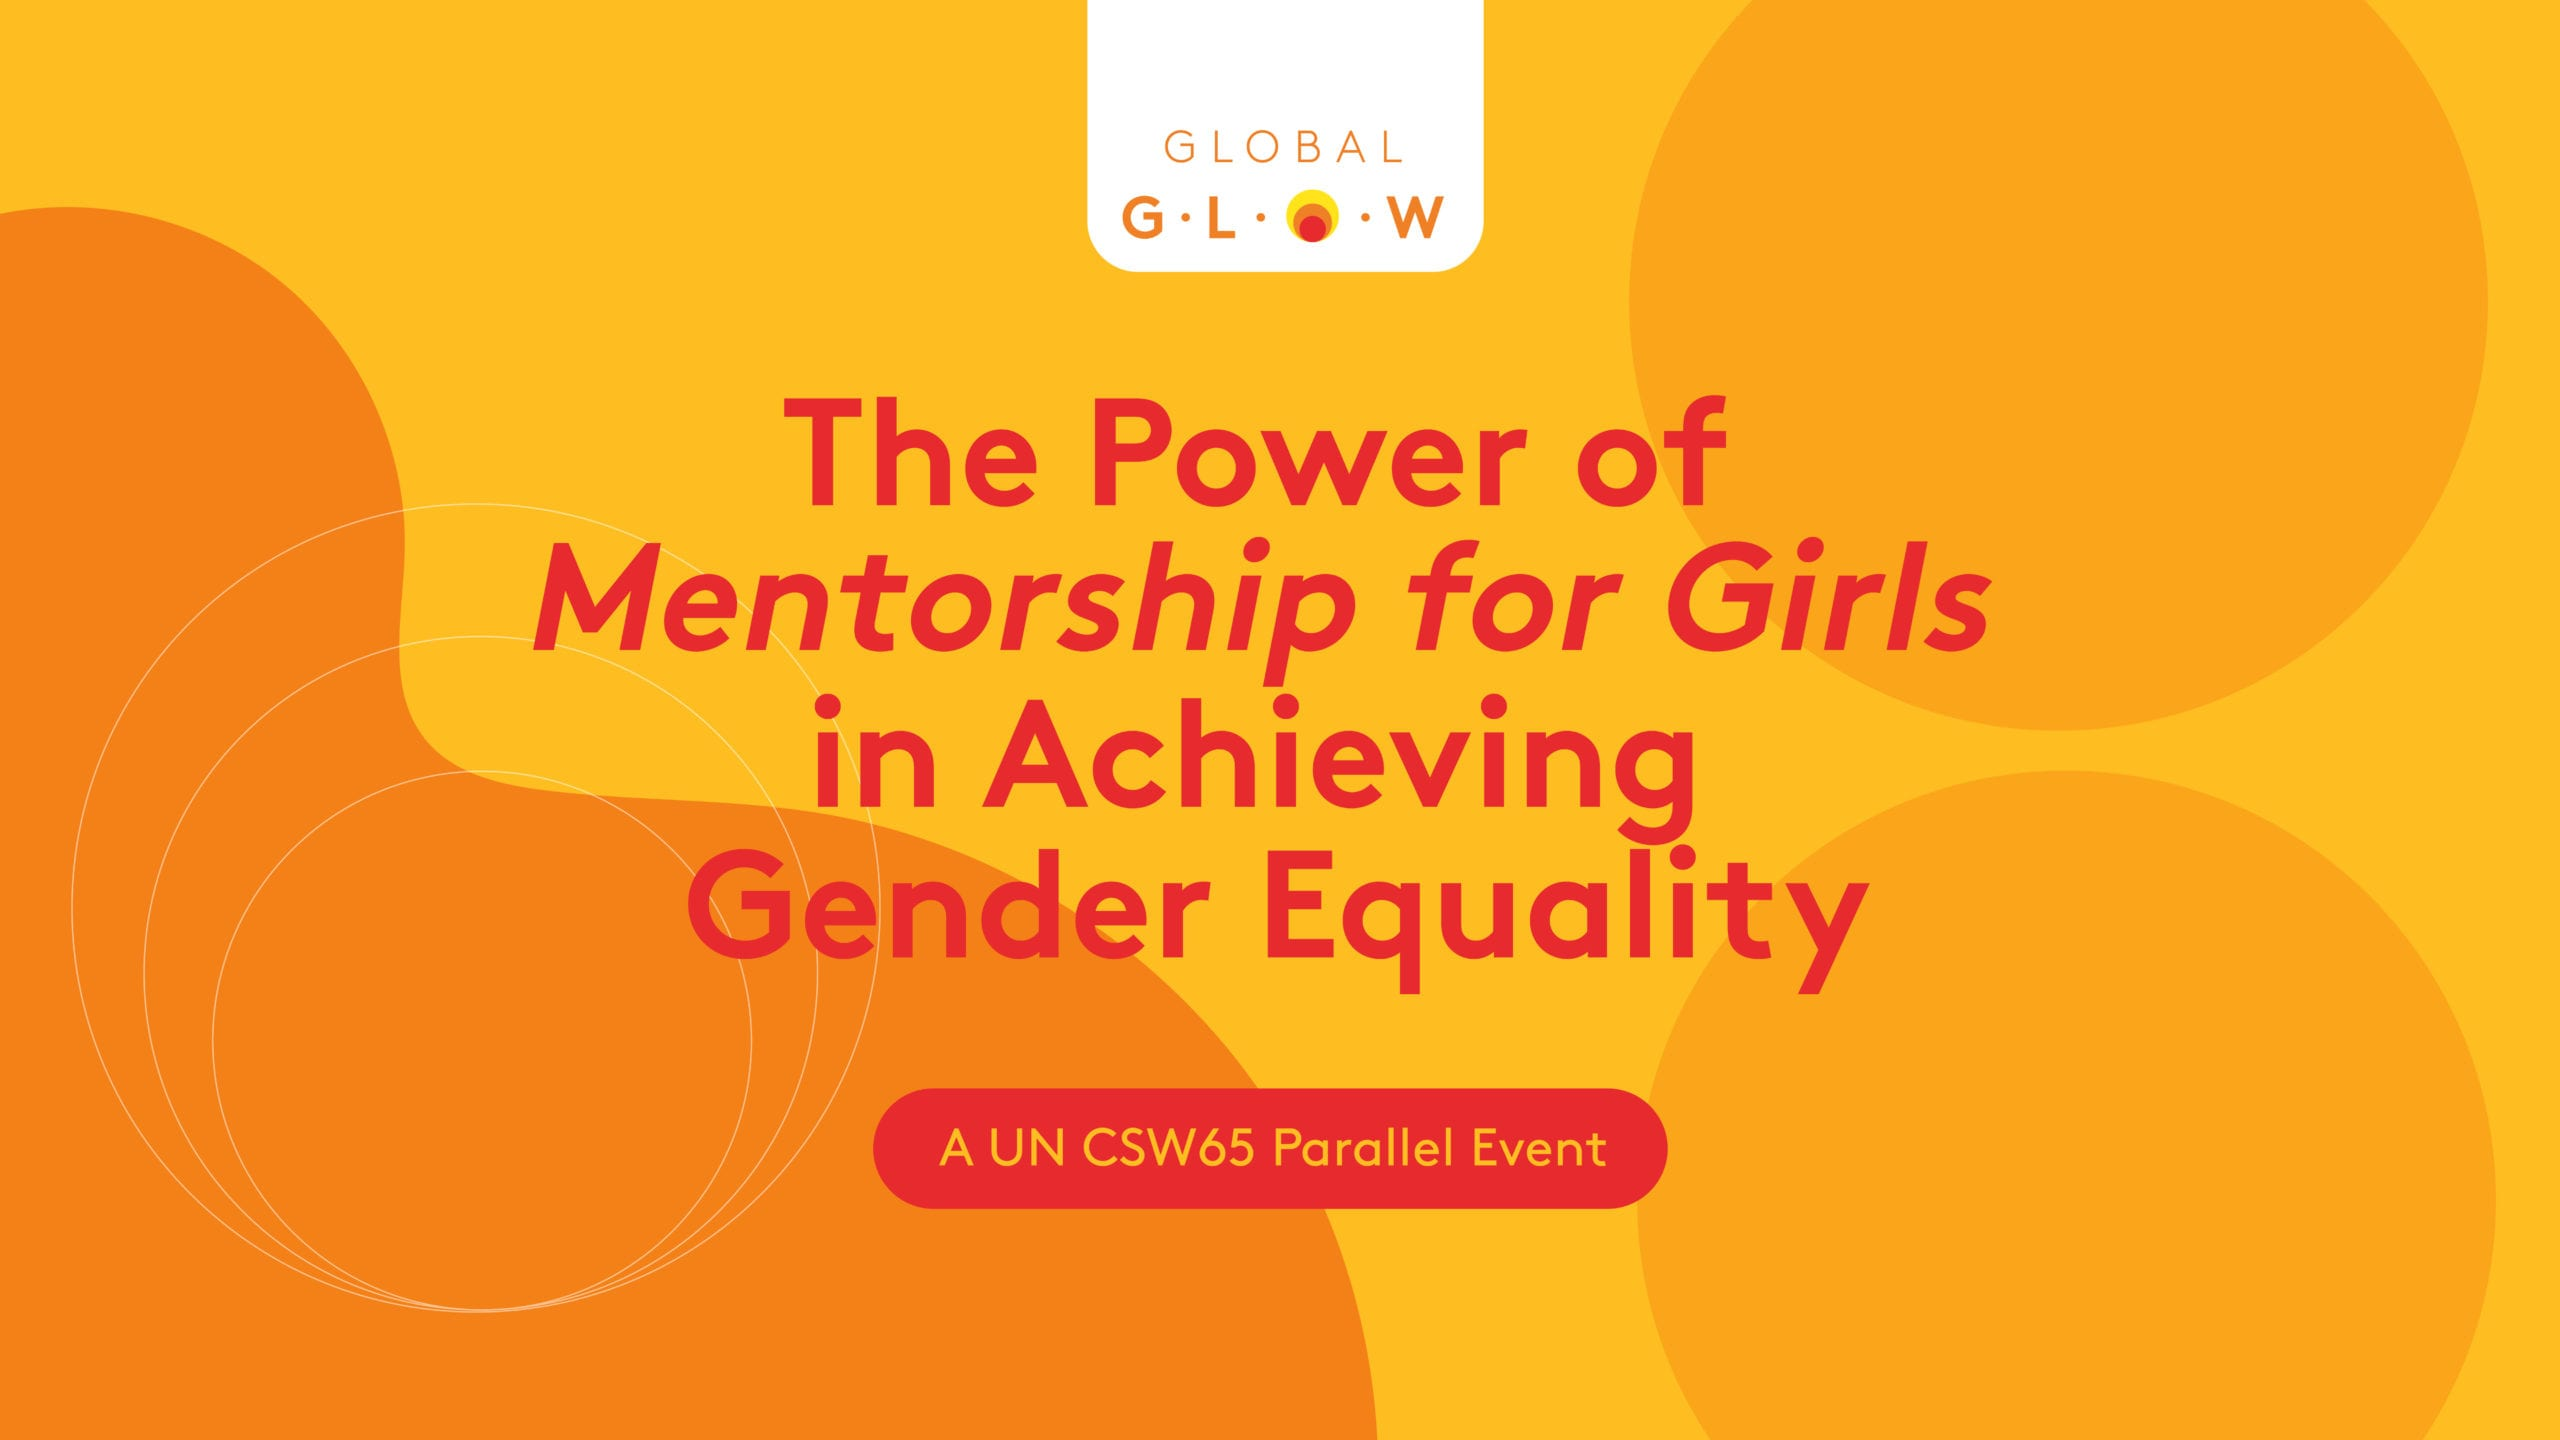 Global G.L.O.W. Celebrates the Power of Mentorship at NGO CSW65 Parallel Event